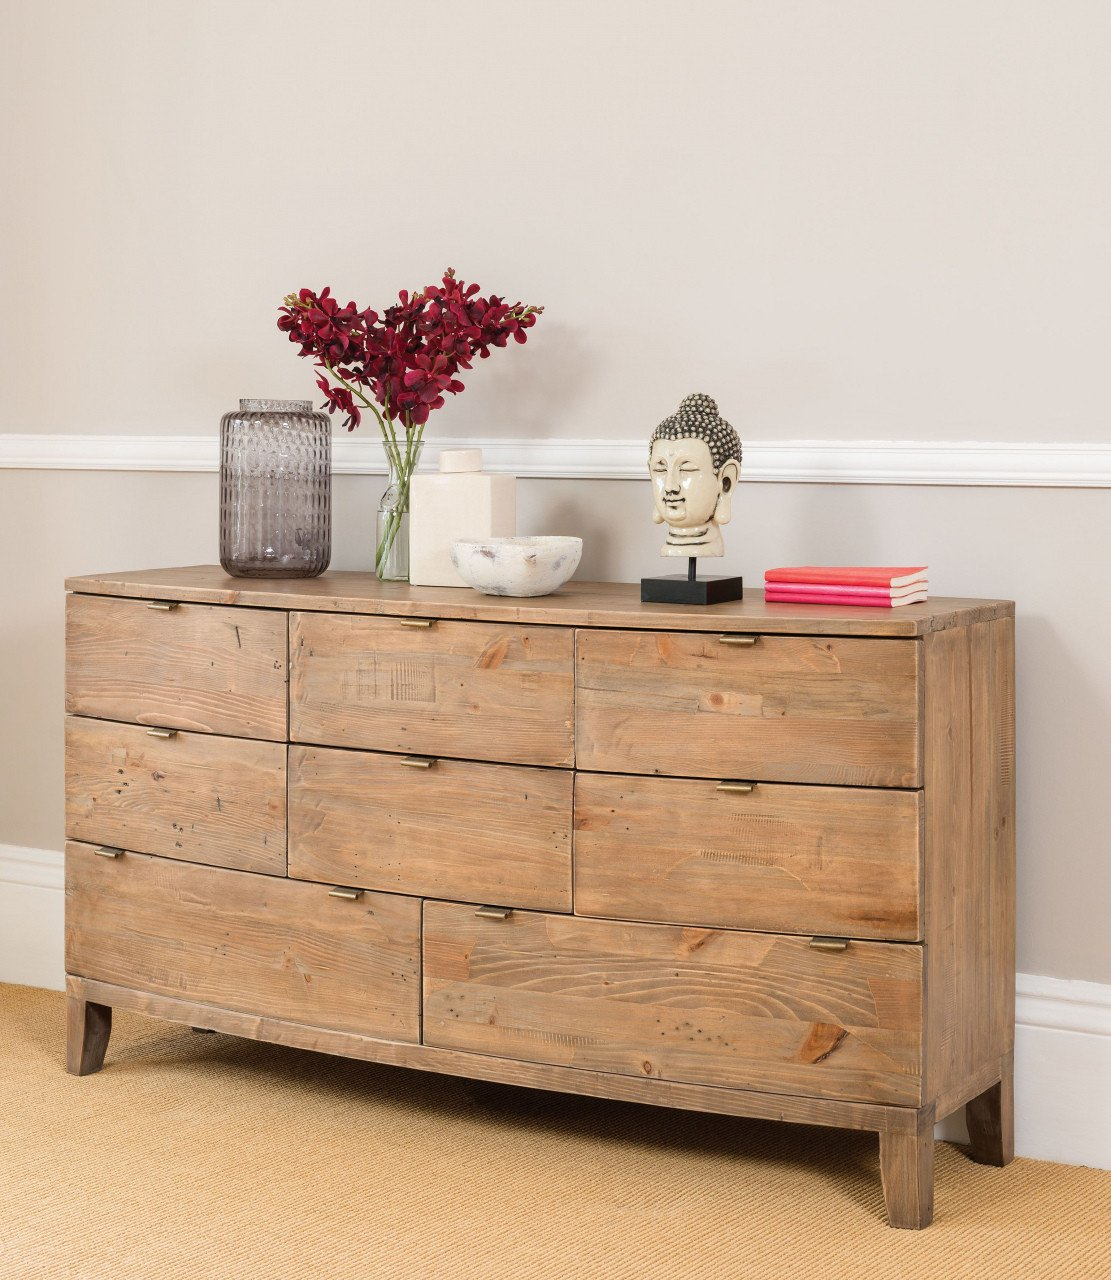 Bedroom Dressers for Sale New Reclaimed Wood Dresser — Procura Home Blog